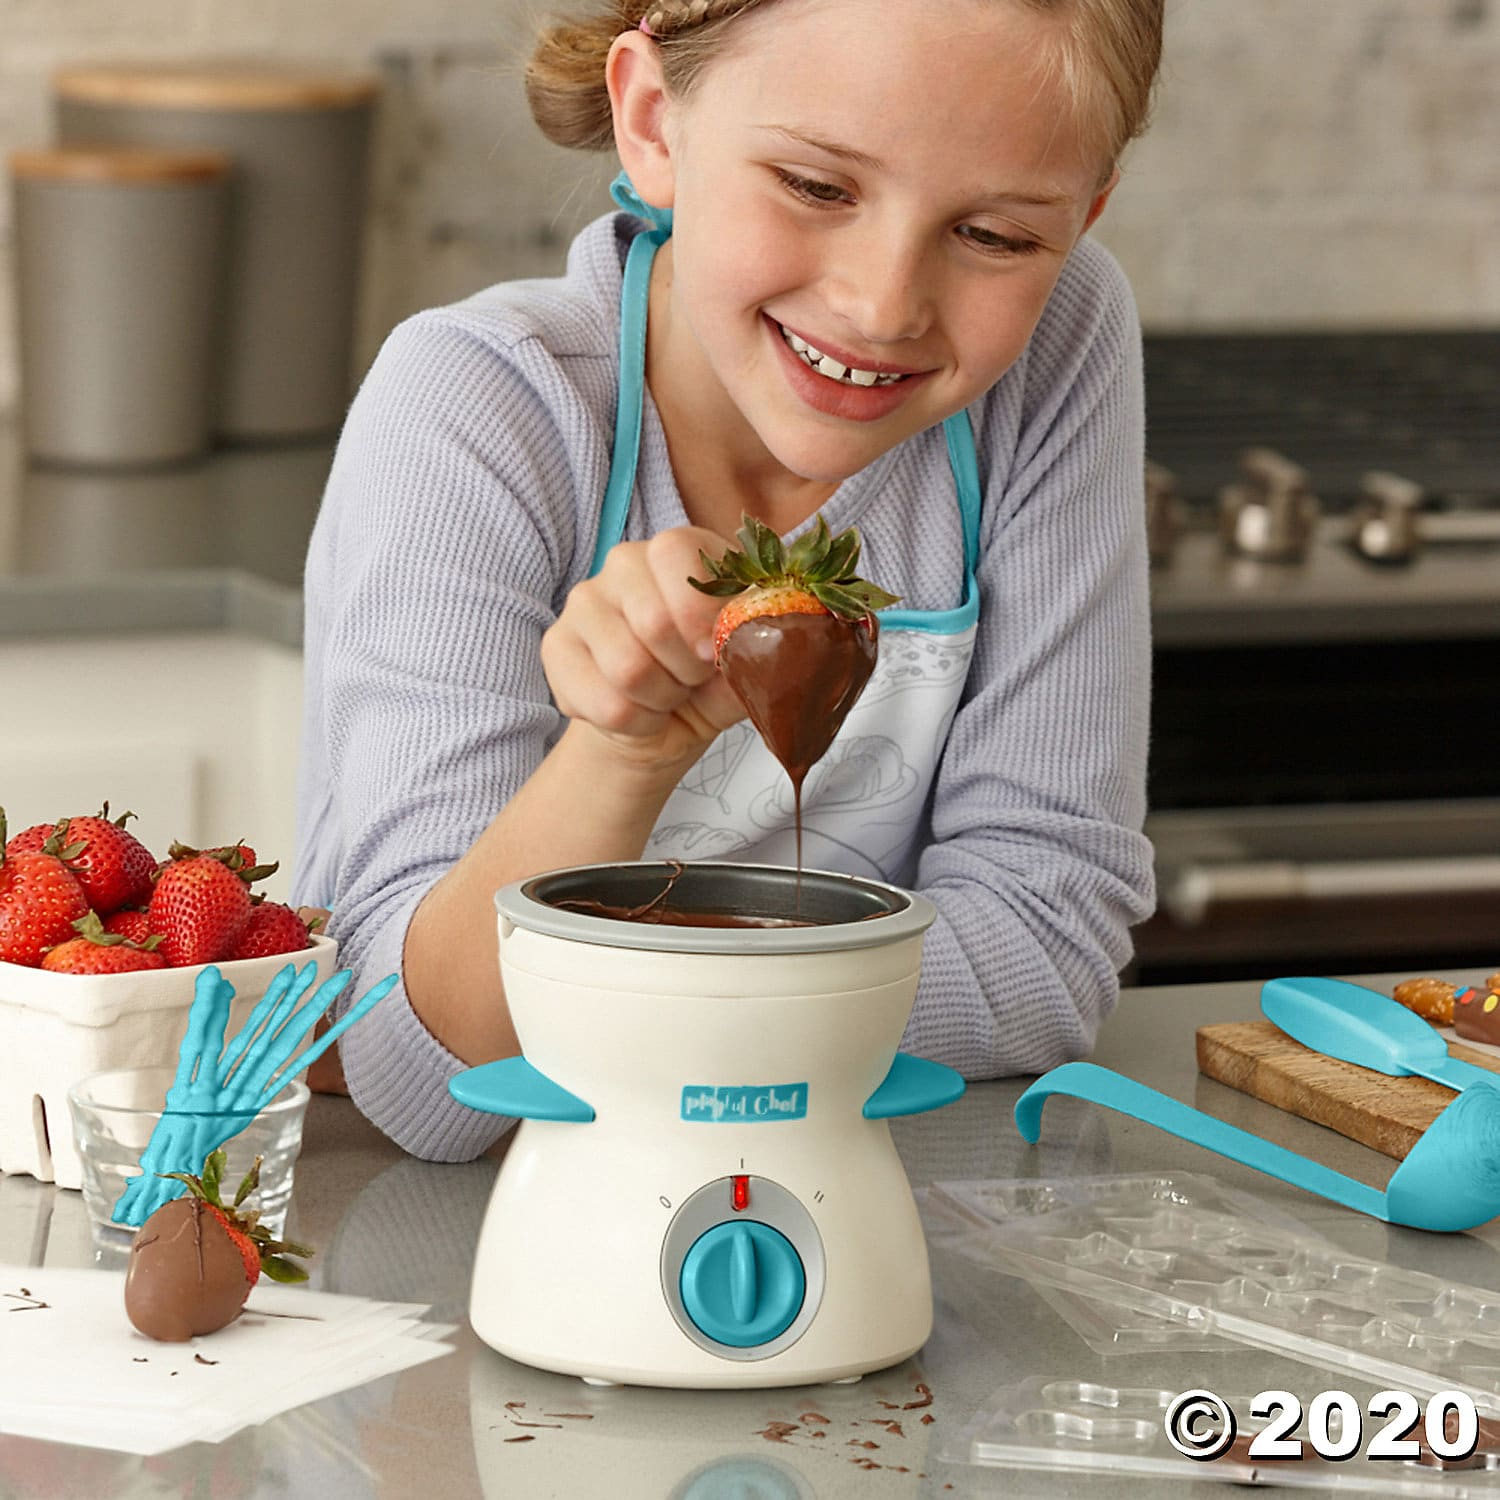 Playful Chef: Chocolate Studio. A melting pot that is cool to the touch and magically turns your chocolate chips or chunks into velvety swirls of perfectly smooth, melted chocolate. It's not a dream! 2020 Valentine's Day Gift Guide from Jays Sweet N Sour Life Blog.